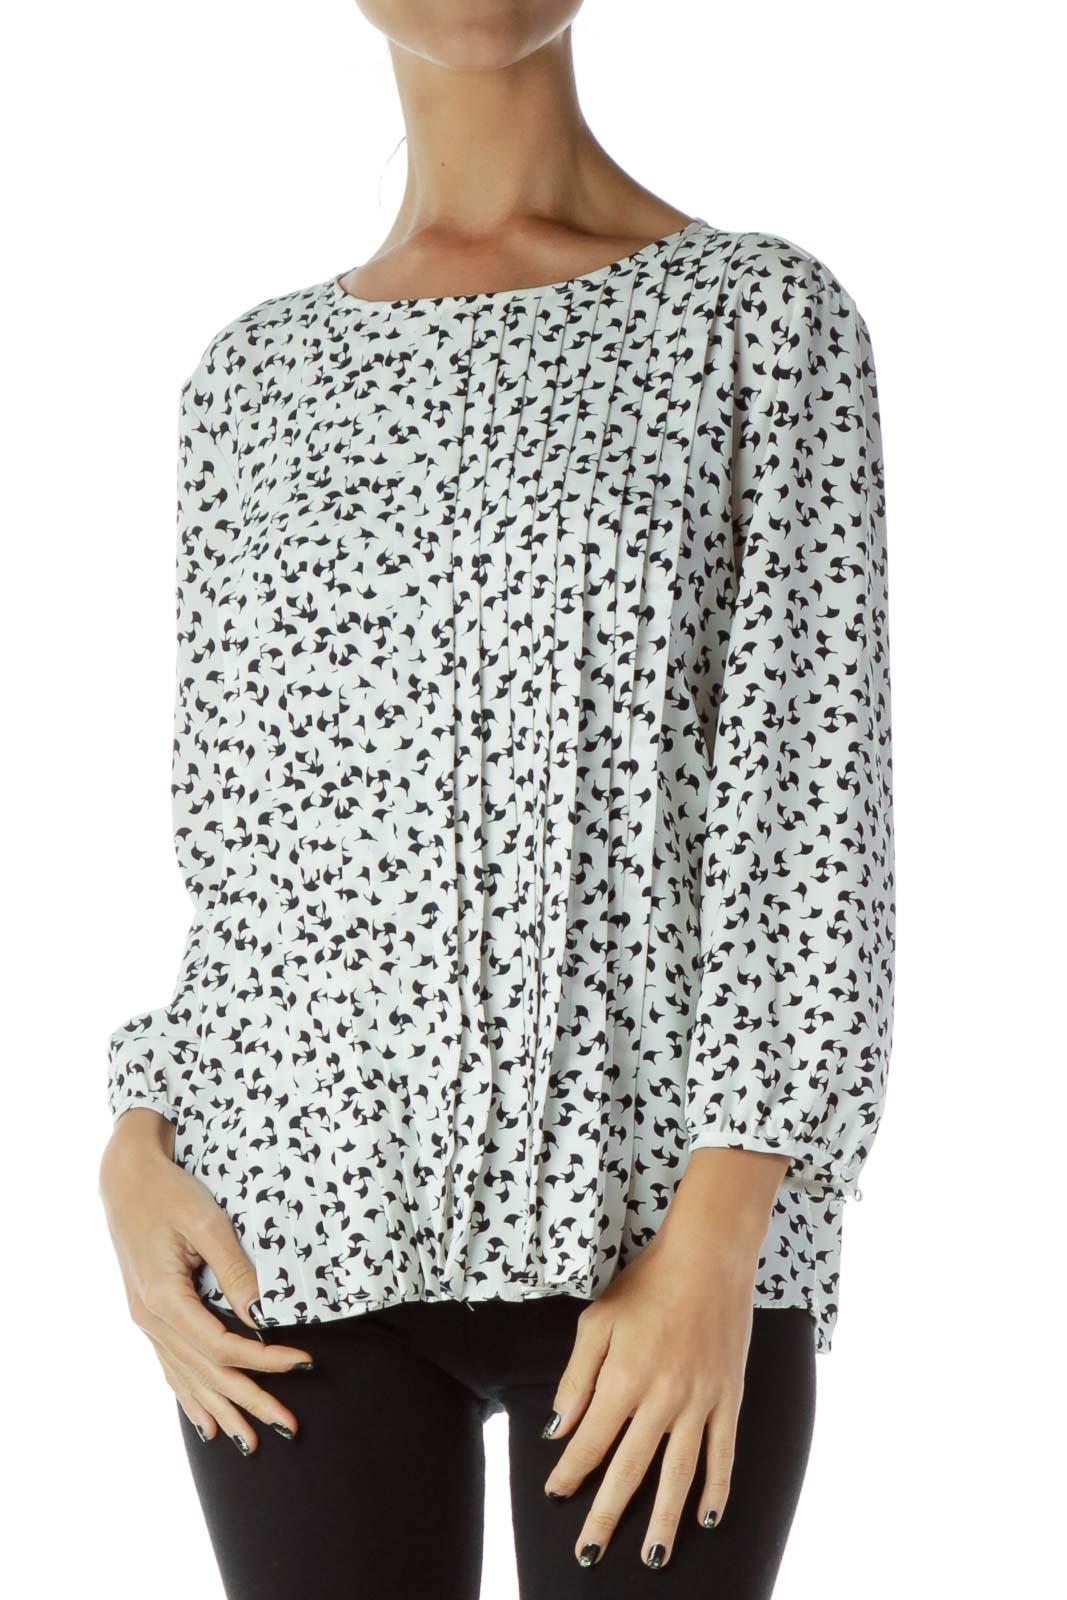 Black White Patterned Blouse